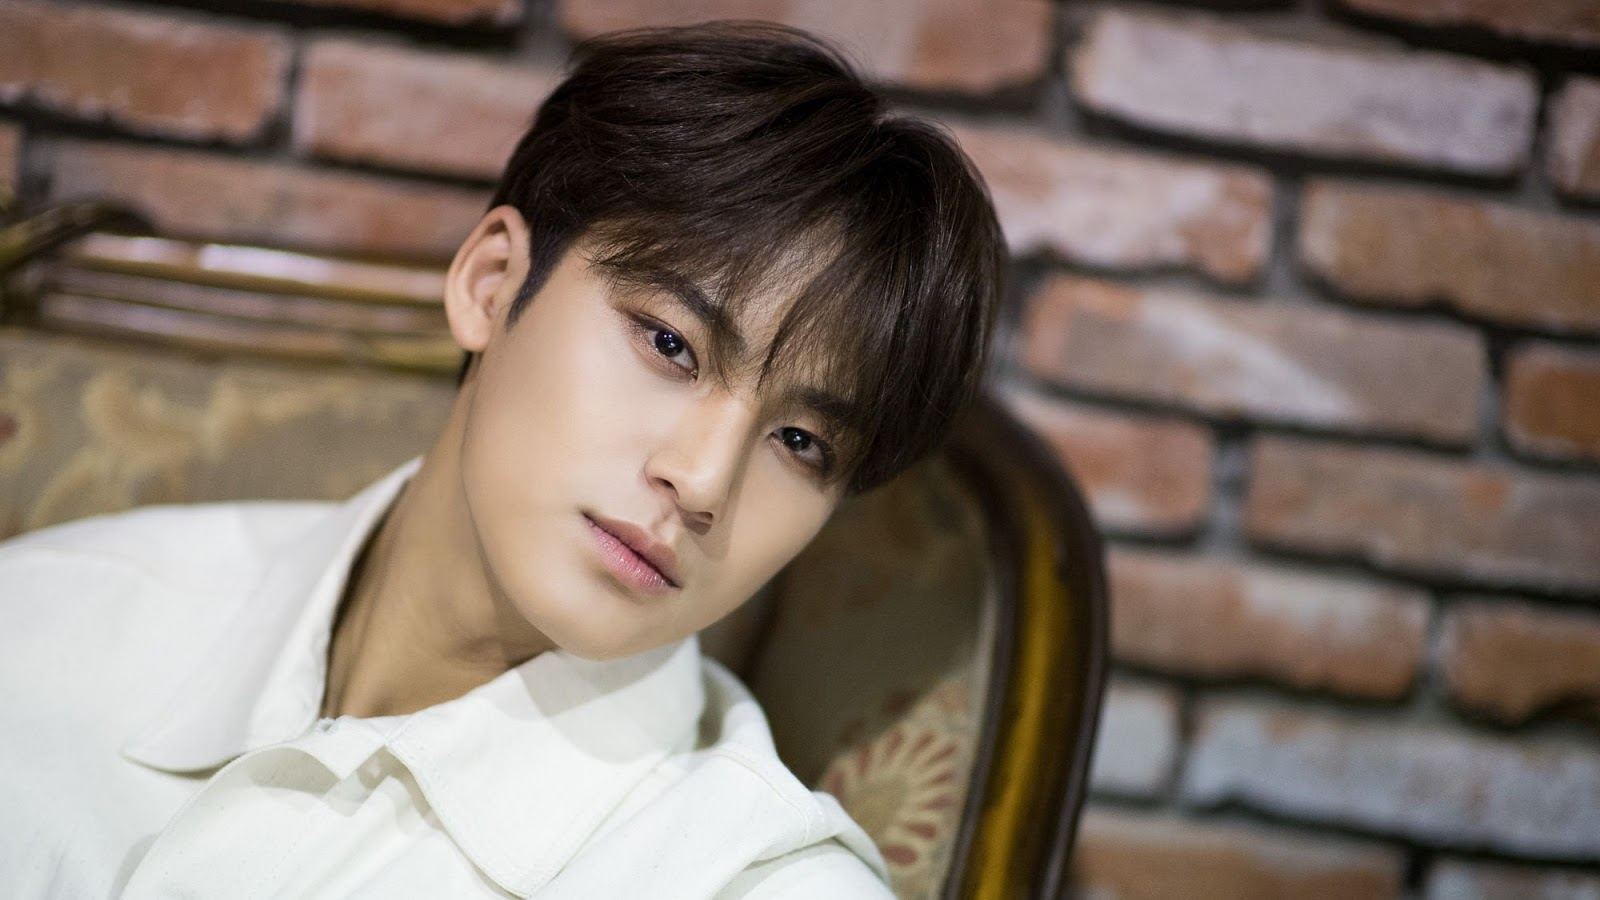 Confirmed Had Visit the Night Club in Itaewon, SEVENTEEN's Mingyu Also Apologies